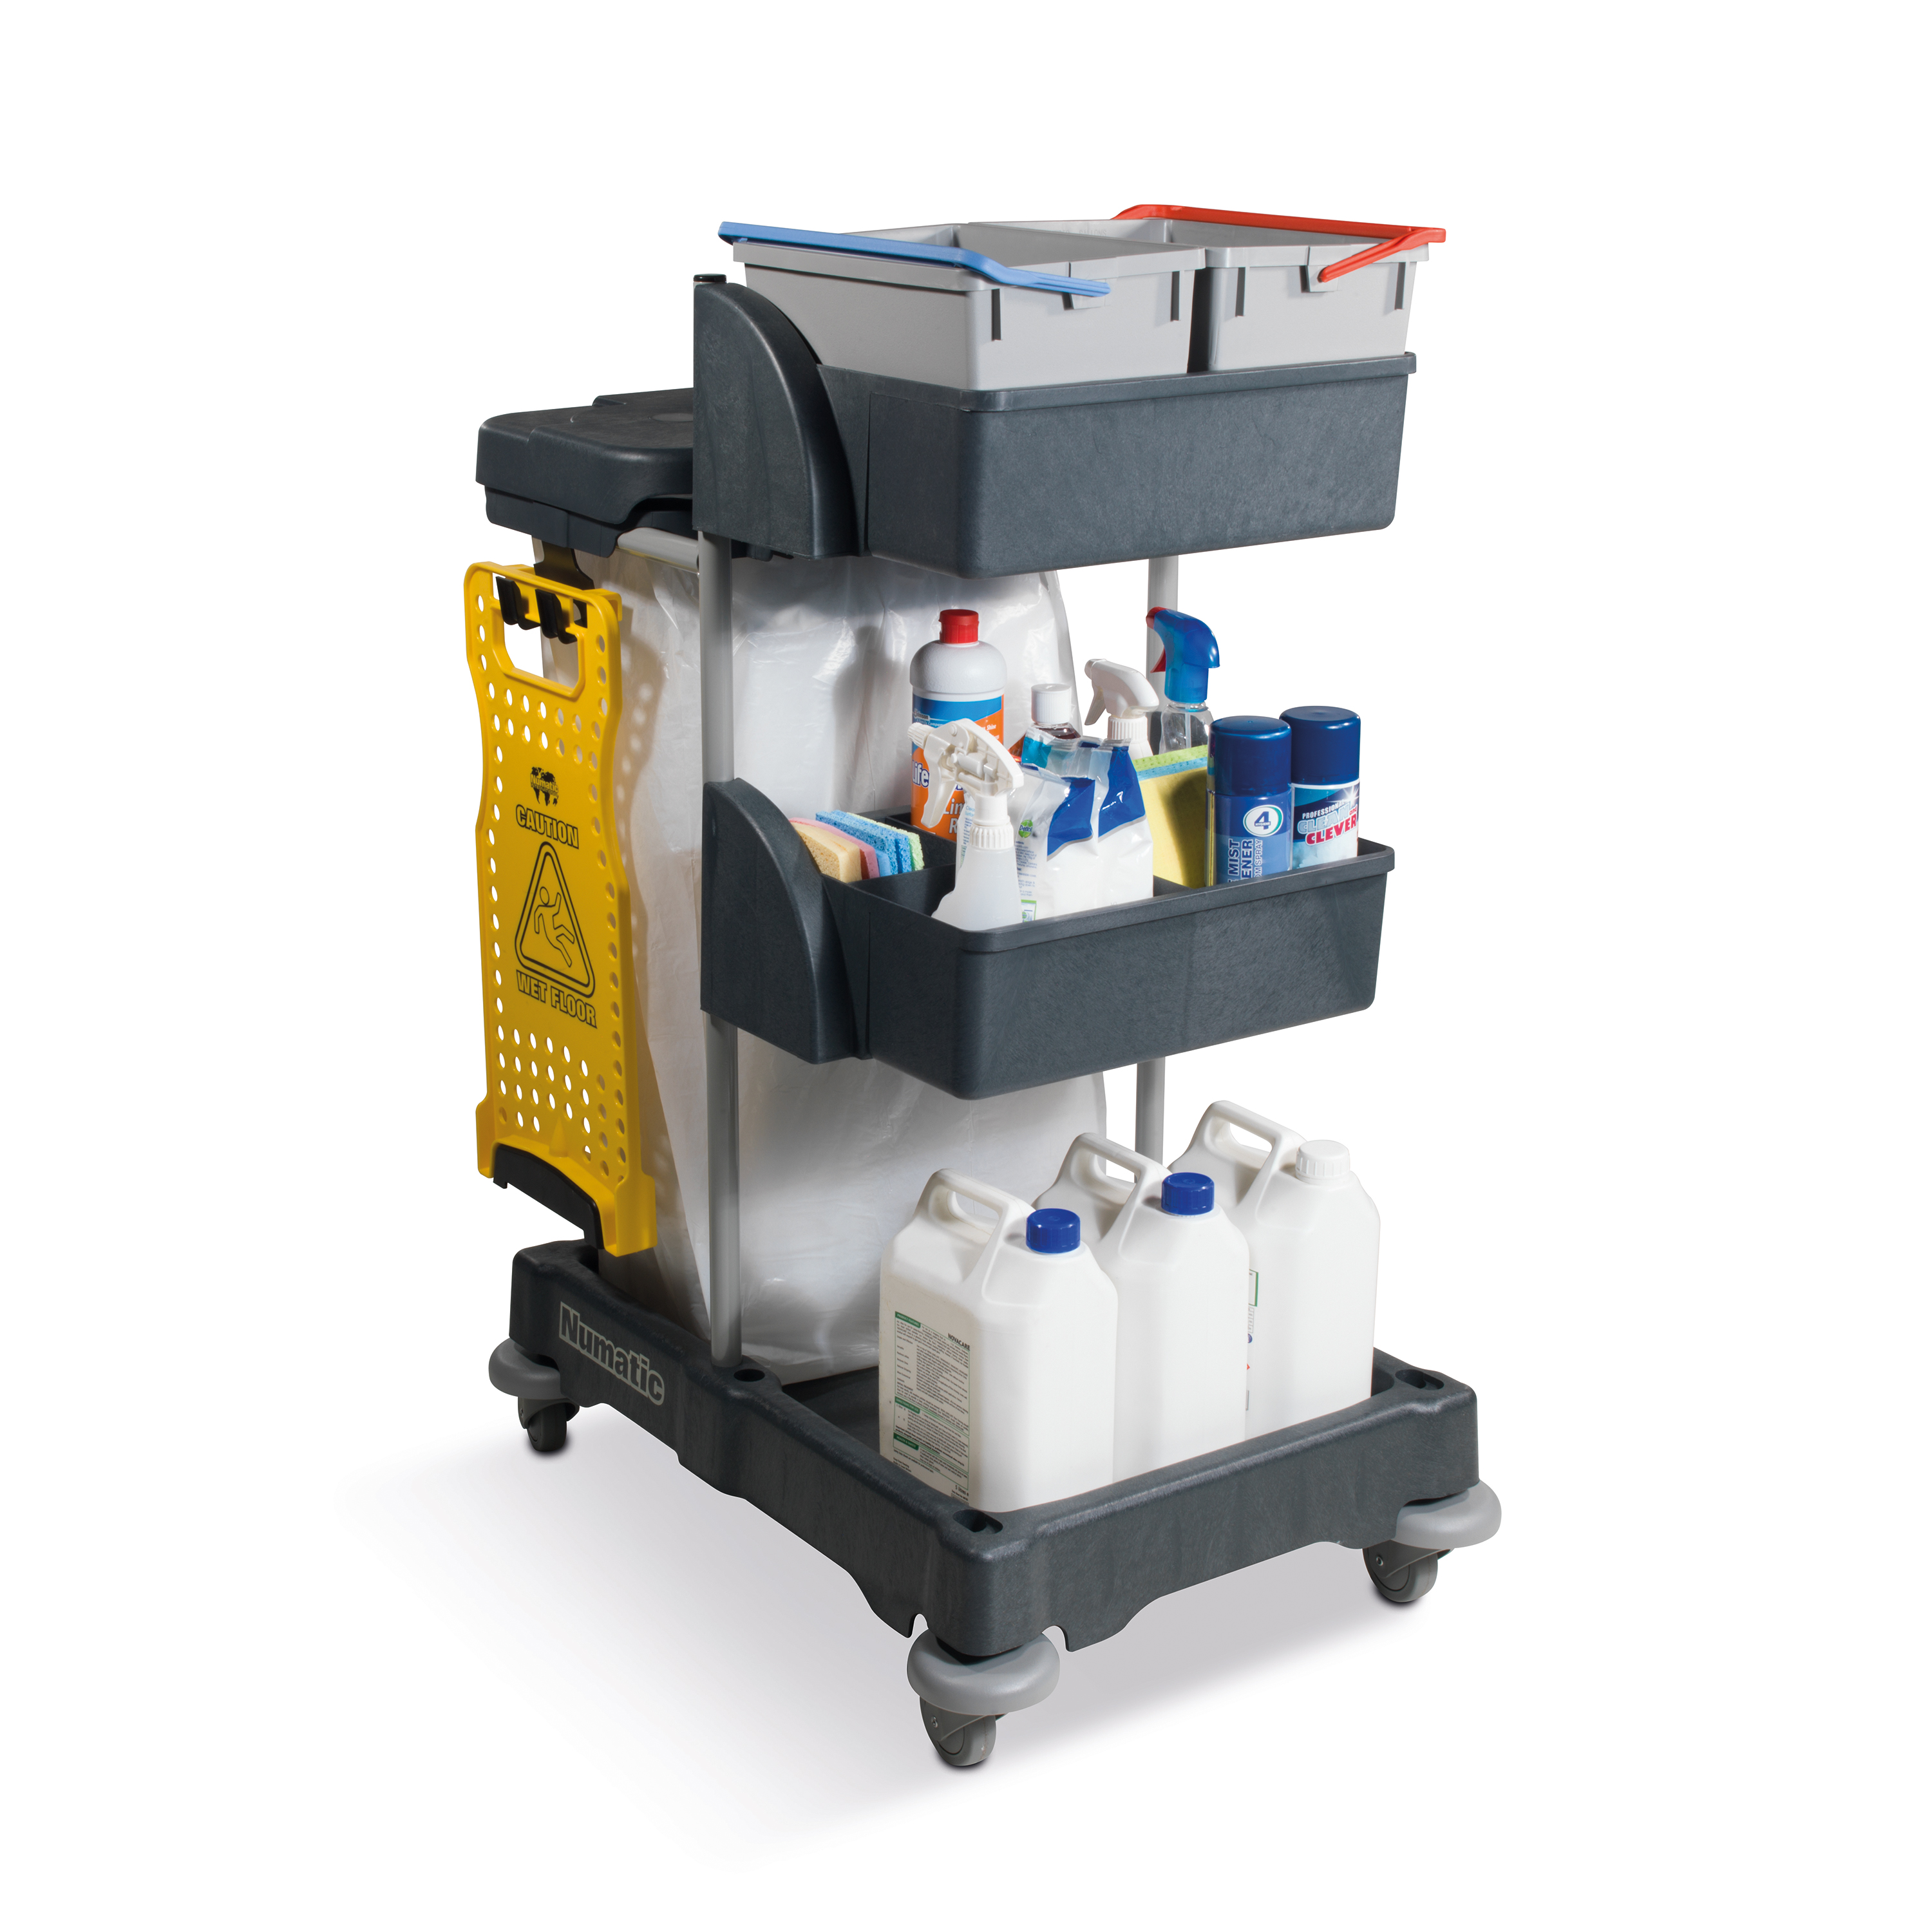 Numatic Xtra Compact XC3 Cleaning Trolley with 2 Buckets and 2 Tray Units W570xD840xH1060mm Ref 758039